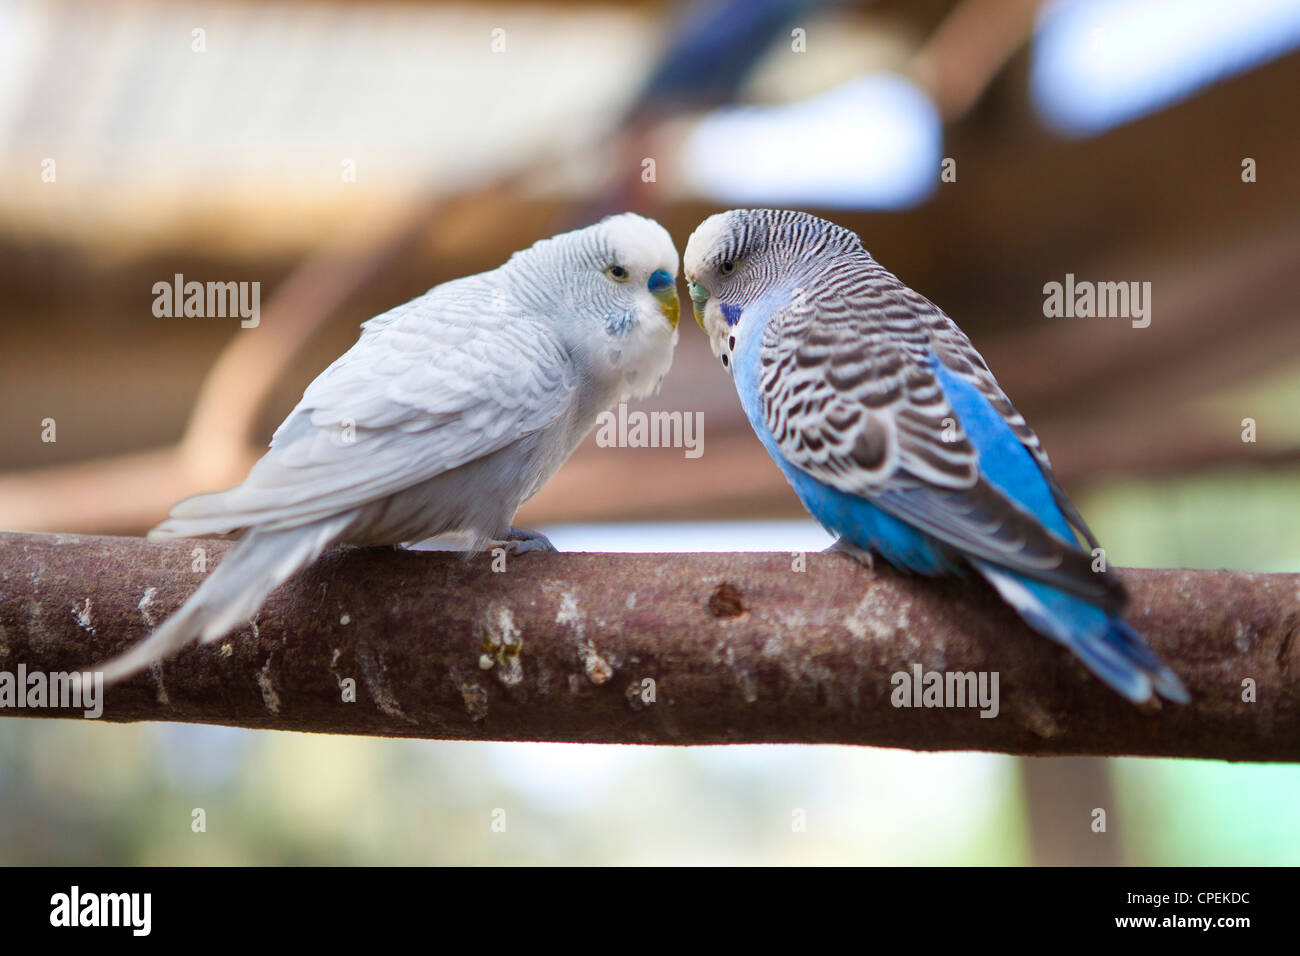 Two Budgies interacting on a tree branch at Butterfly World, Klapmuts, South Africa Stock Photo